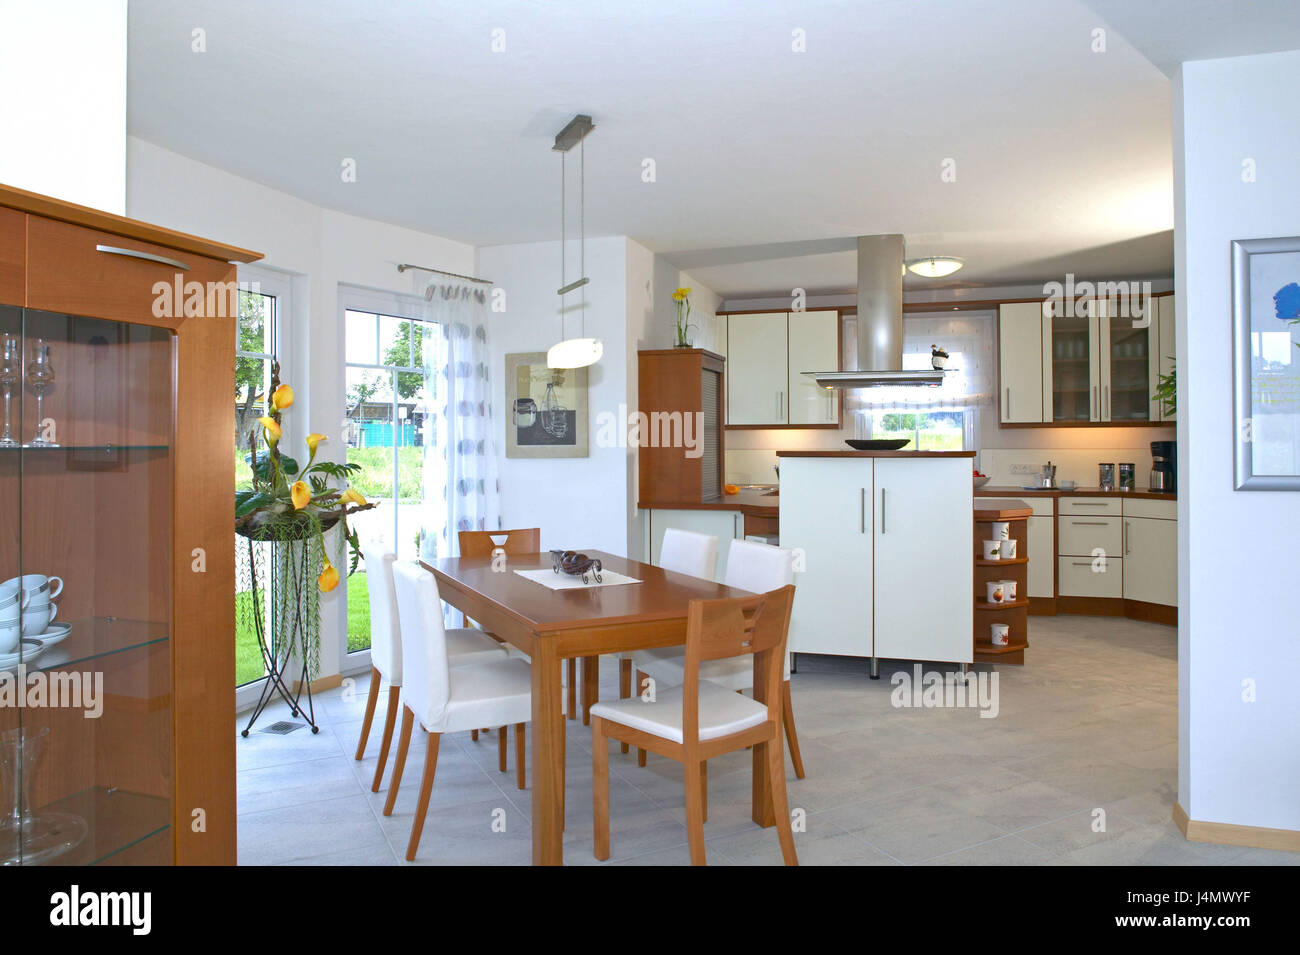 Single Family Dwelling Cuisine Dining Room Flat Living